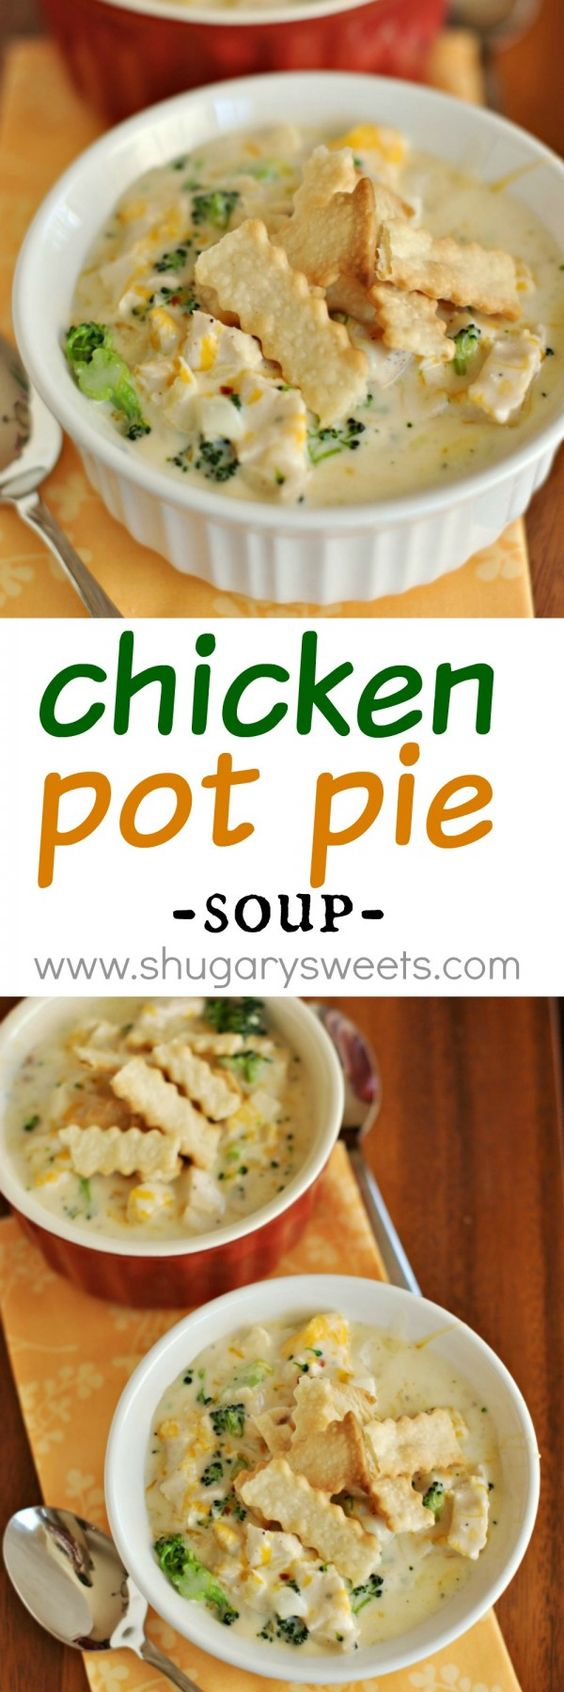 Chicken Pot Pie Soup | Recipe | Pot pies, The o'jays and ...